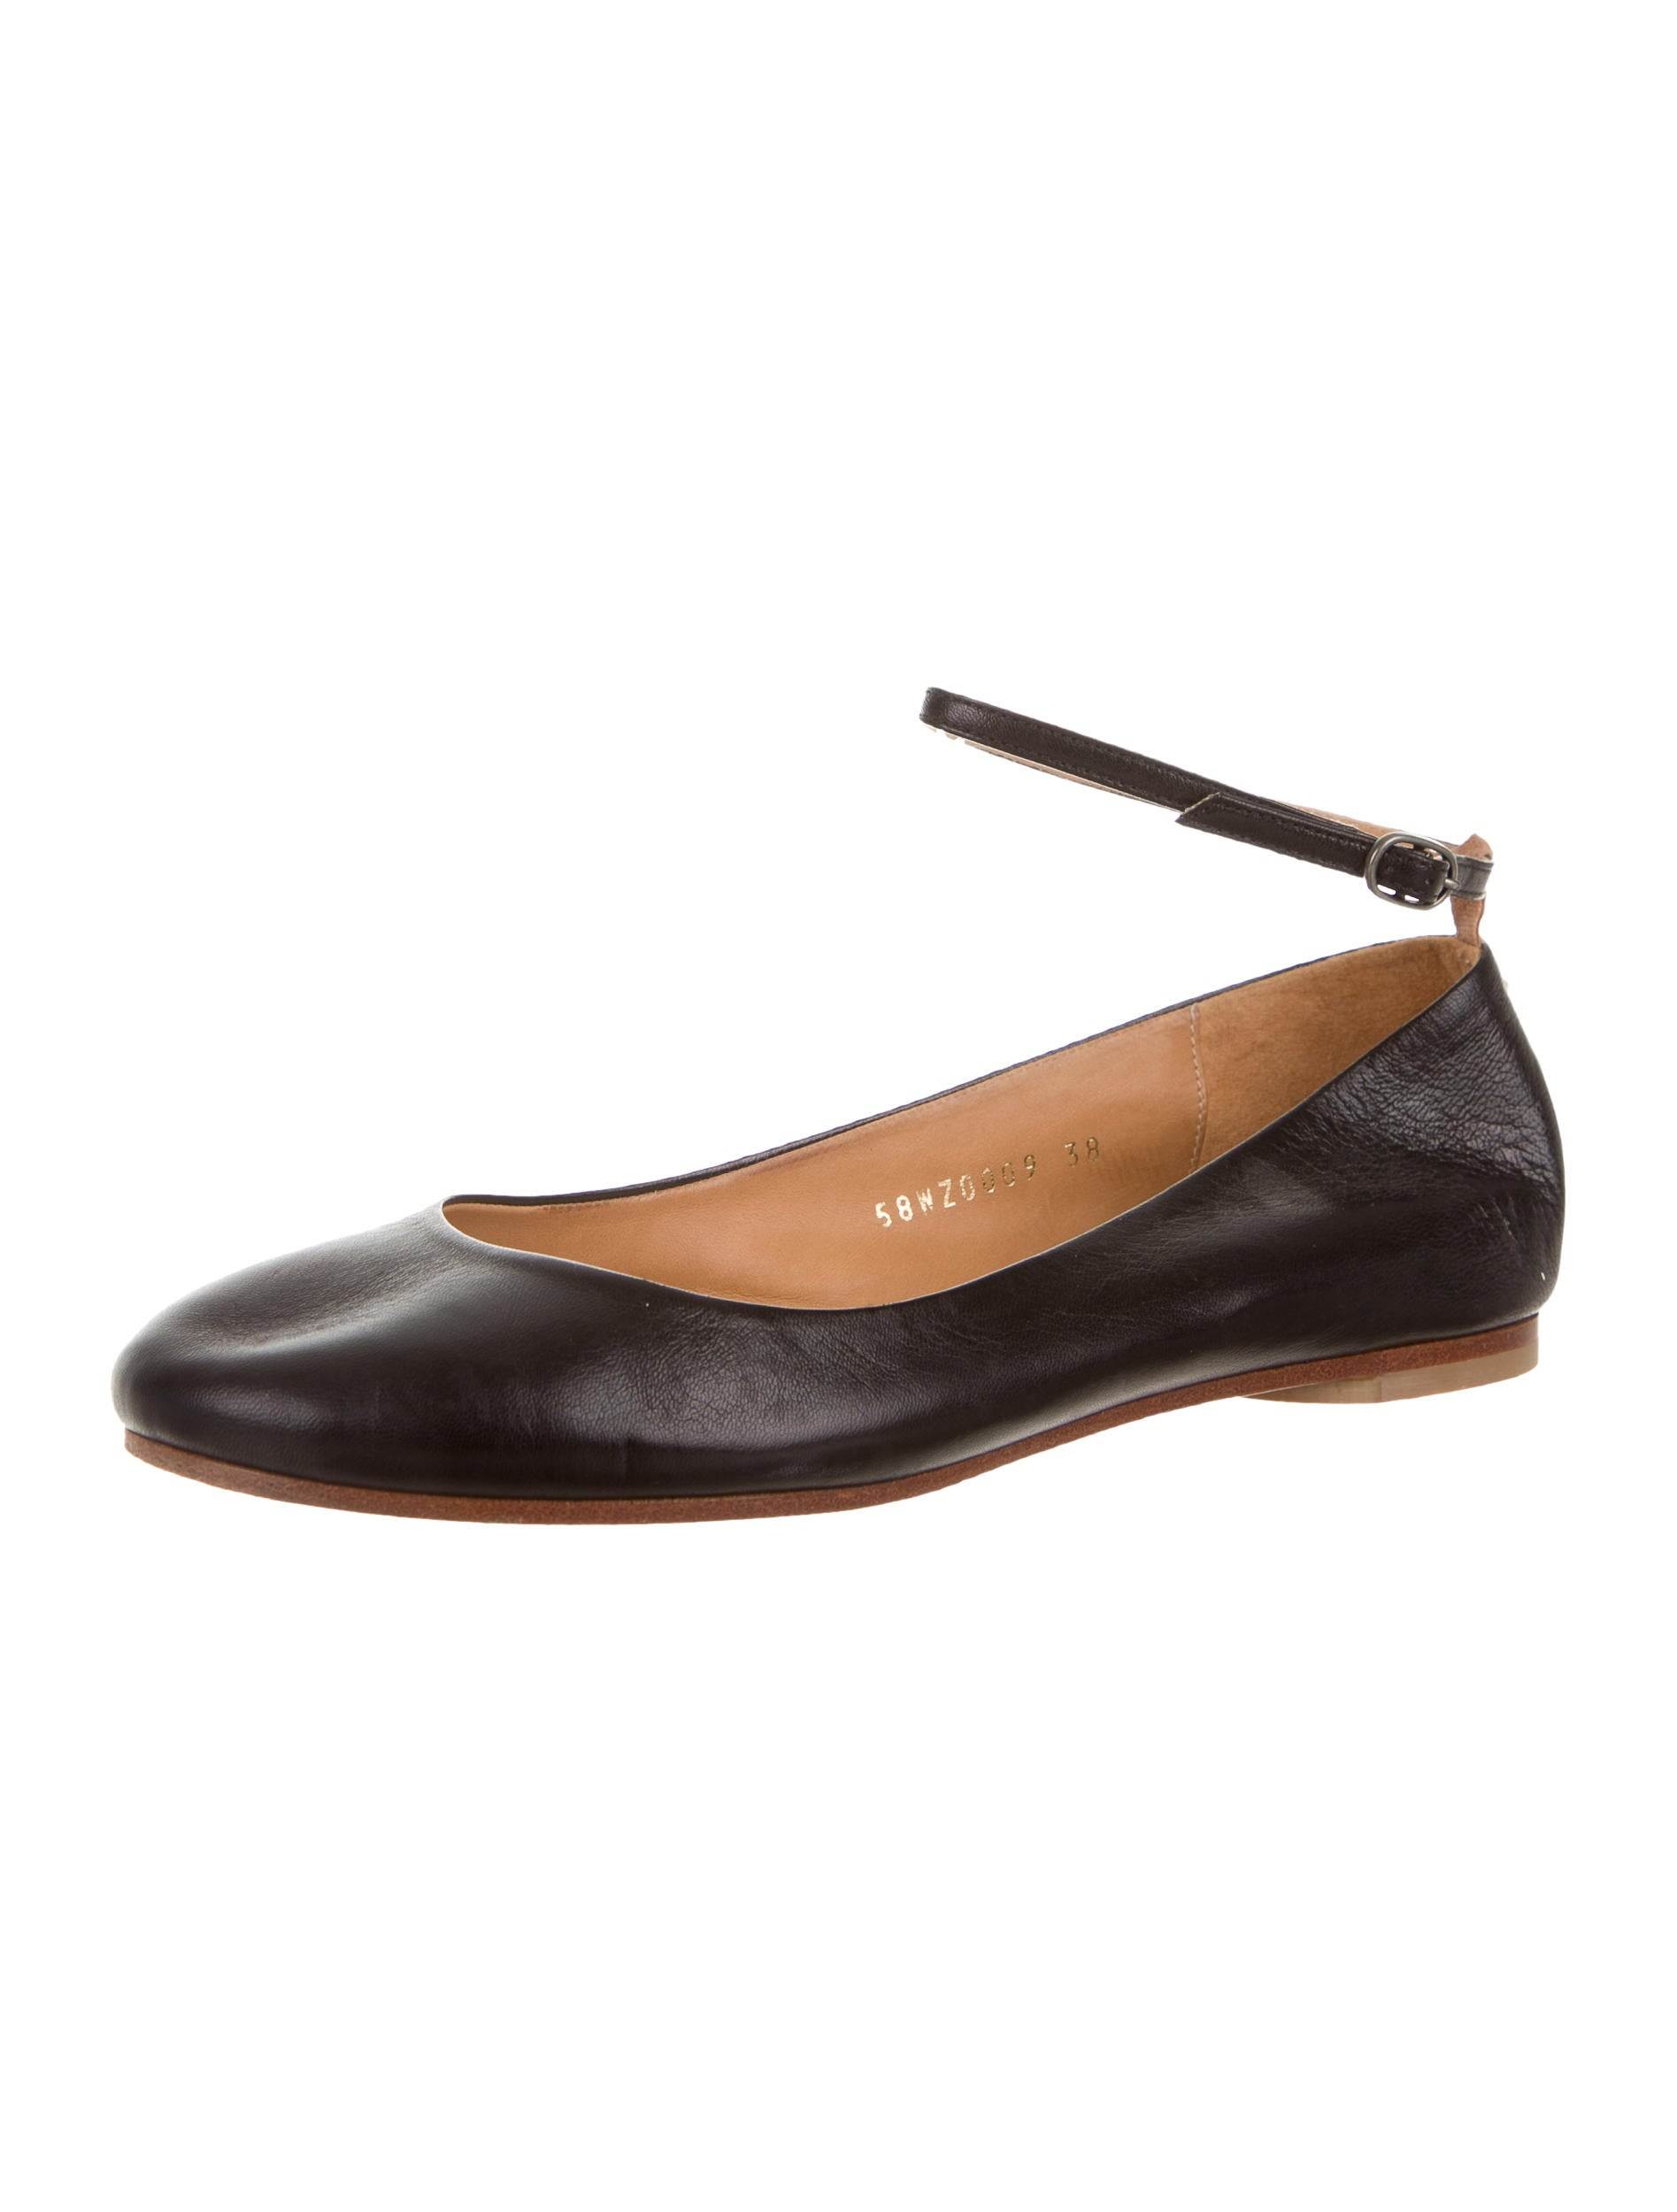 Find leather ankle strap flats at ShopStyle. Shop the latest collection of leather ankle strap flats from the most popular stores - all in one place.